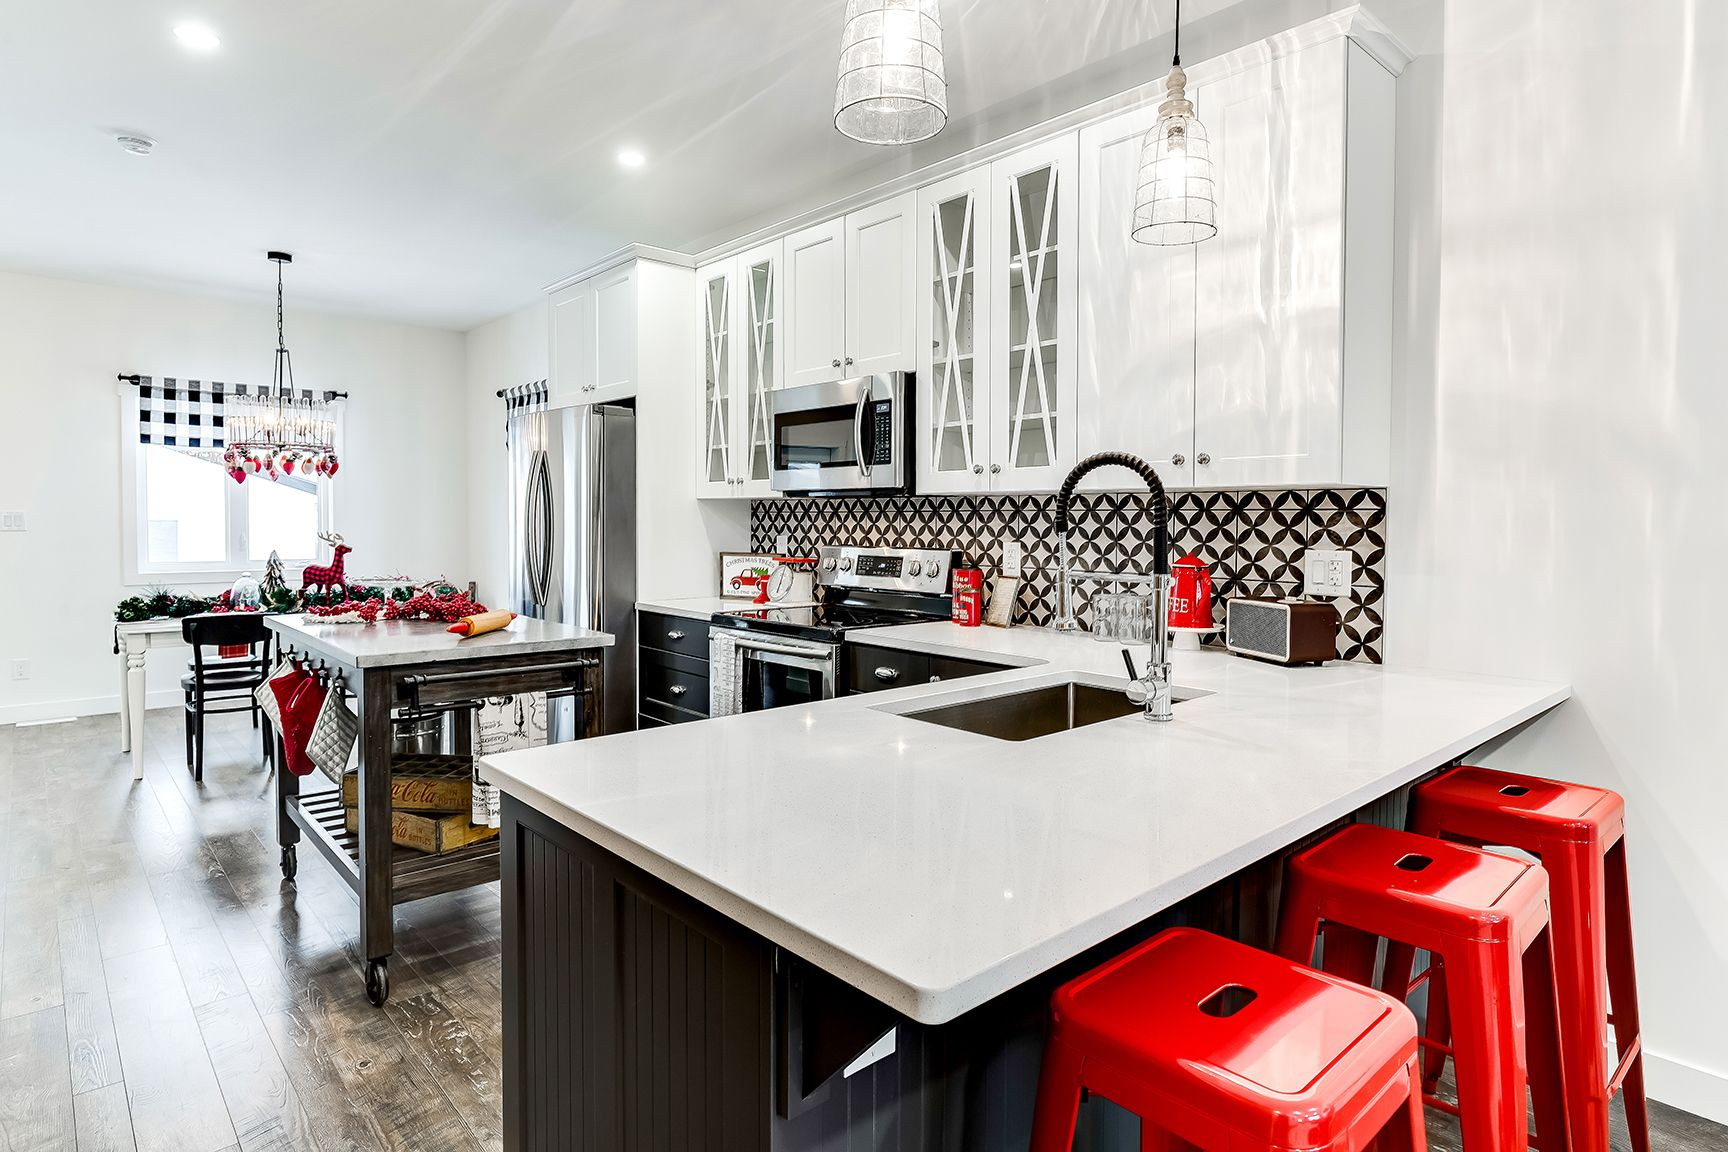 Everlee kitchen cabinets by Superior Cabinets for your ...